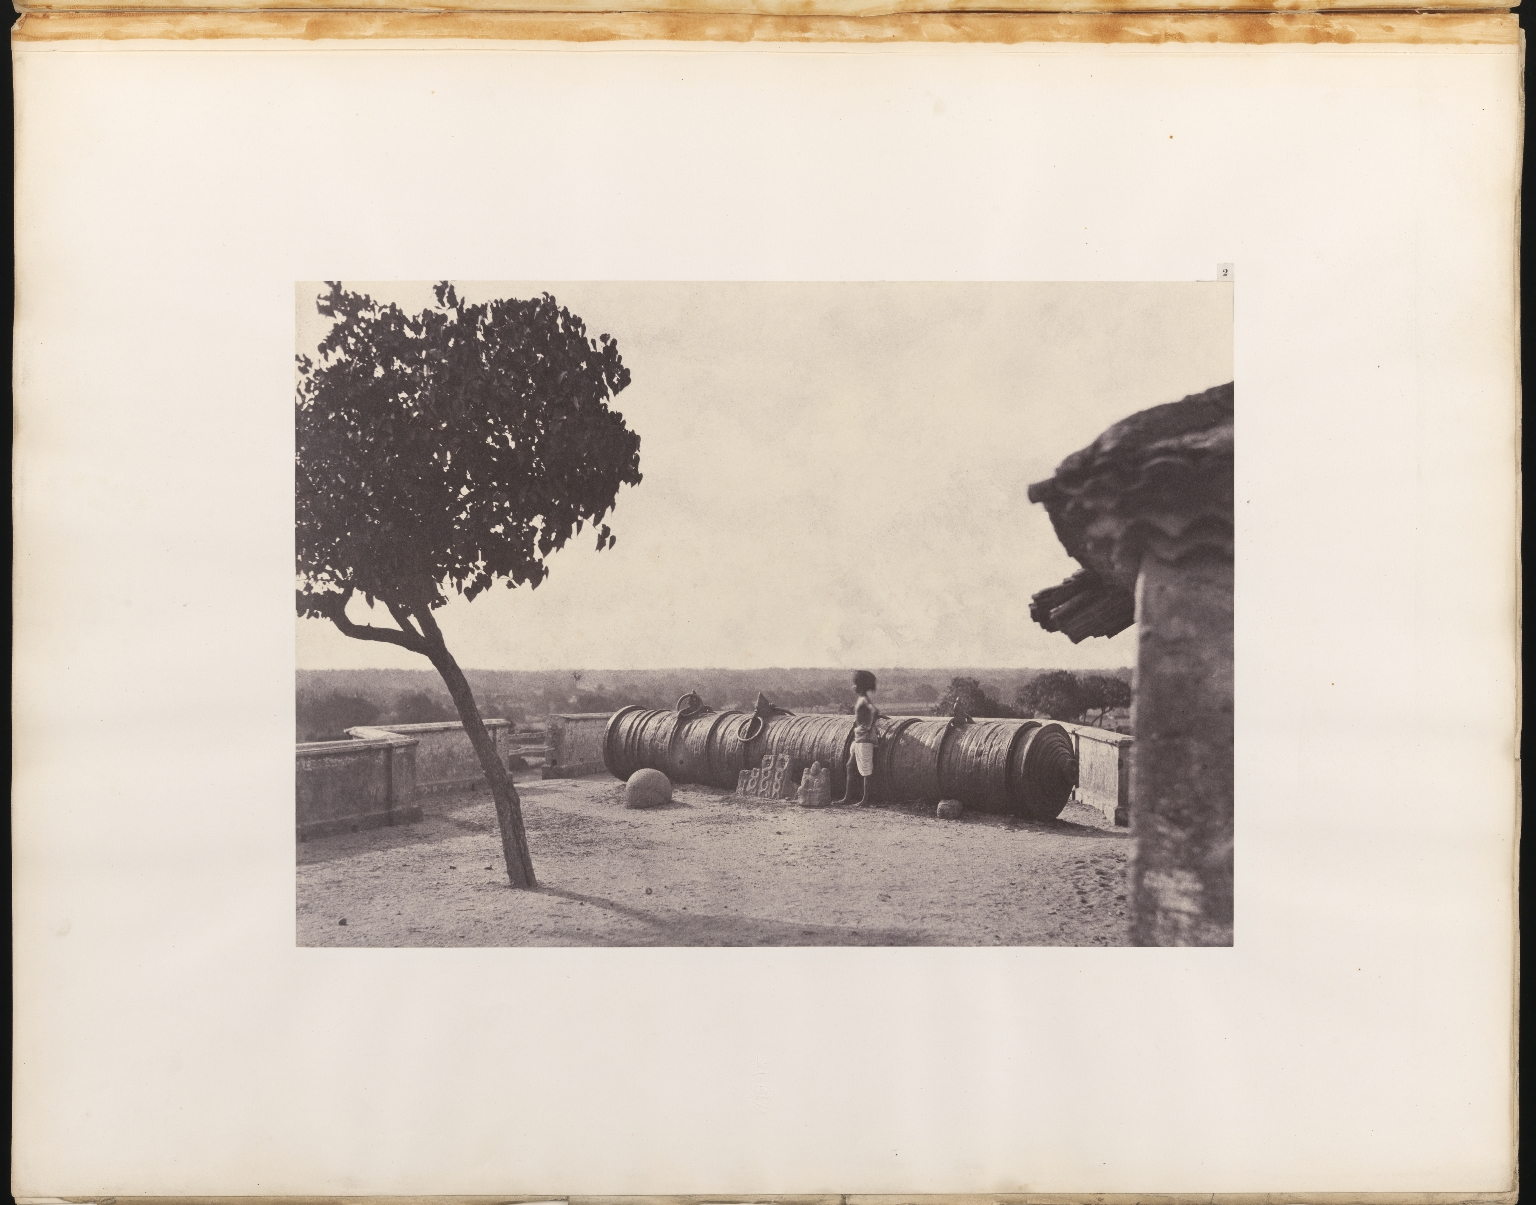 Photographic Views in Tanjore and Trivady, unpaginated. Photograph no. 2